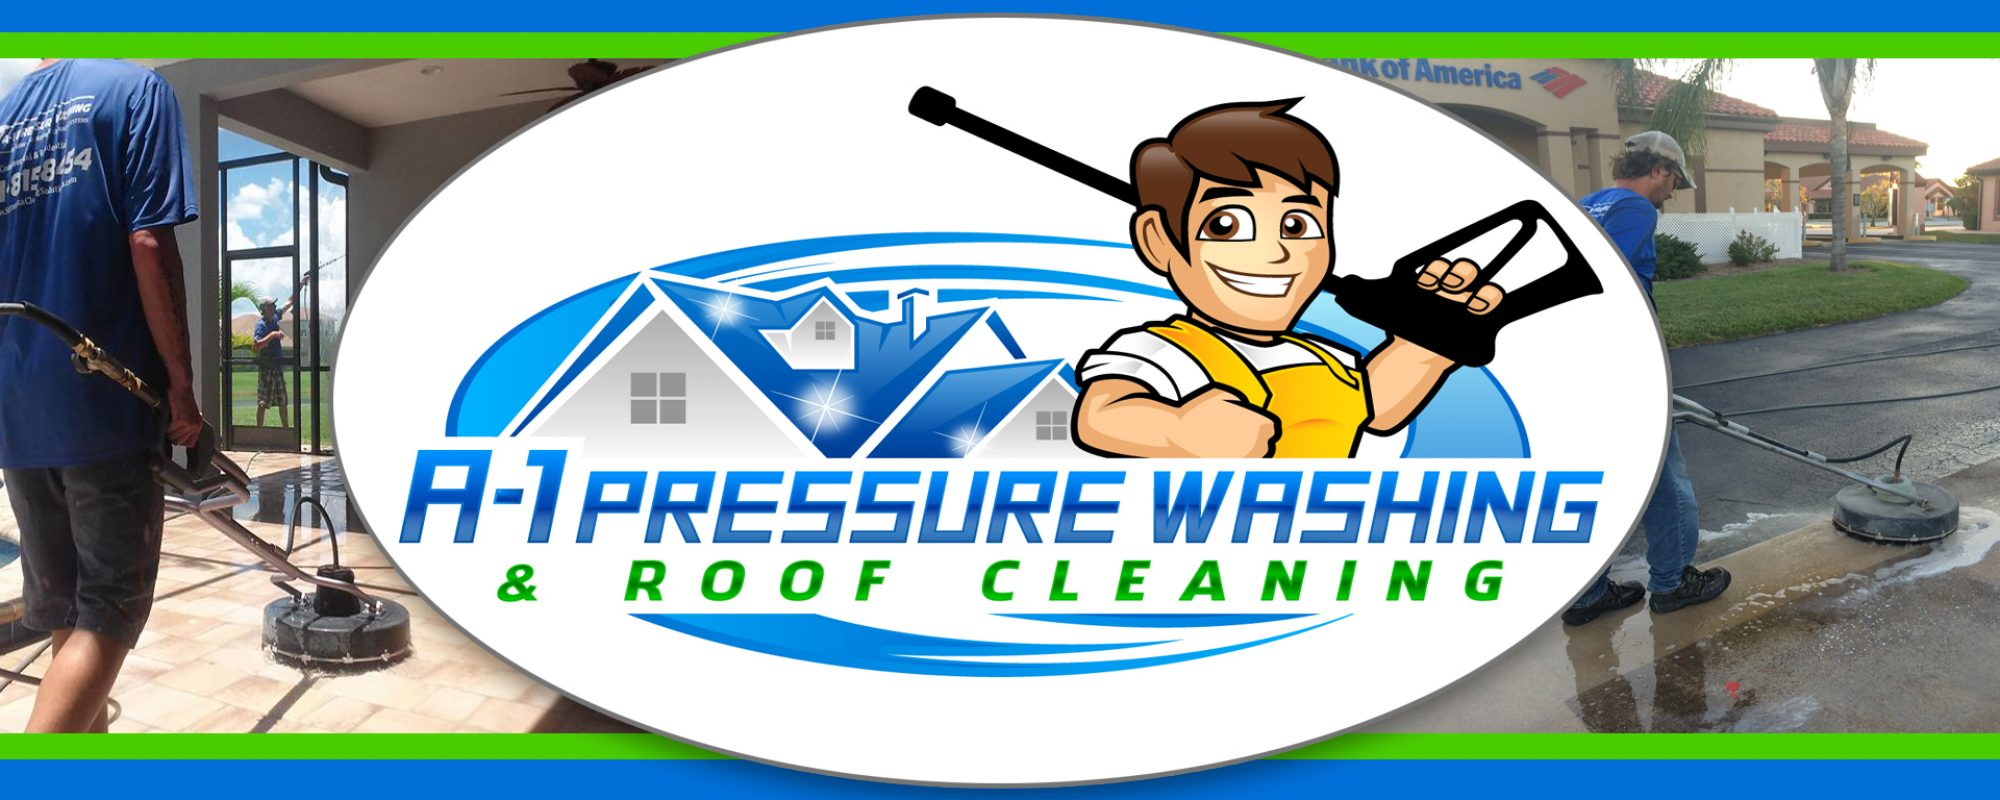 A-1 Pressure Washing & Roof Cleaning (941)815-8454 www